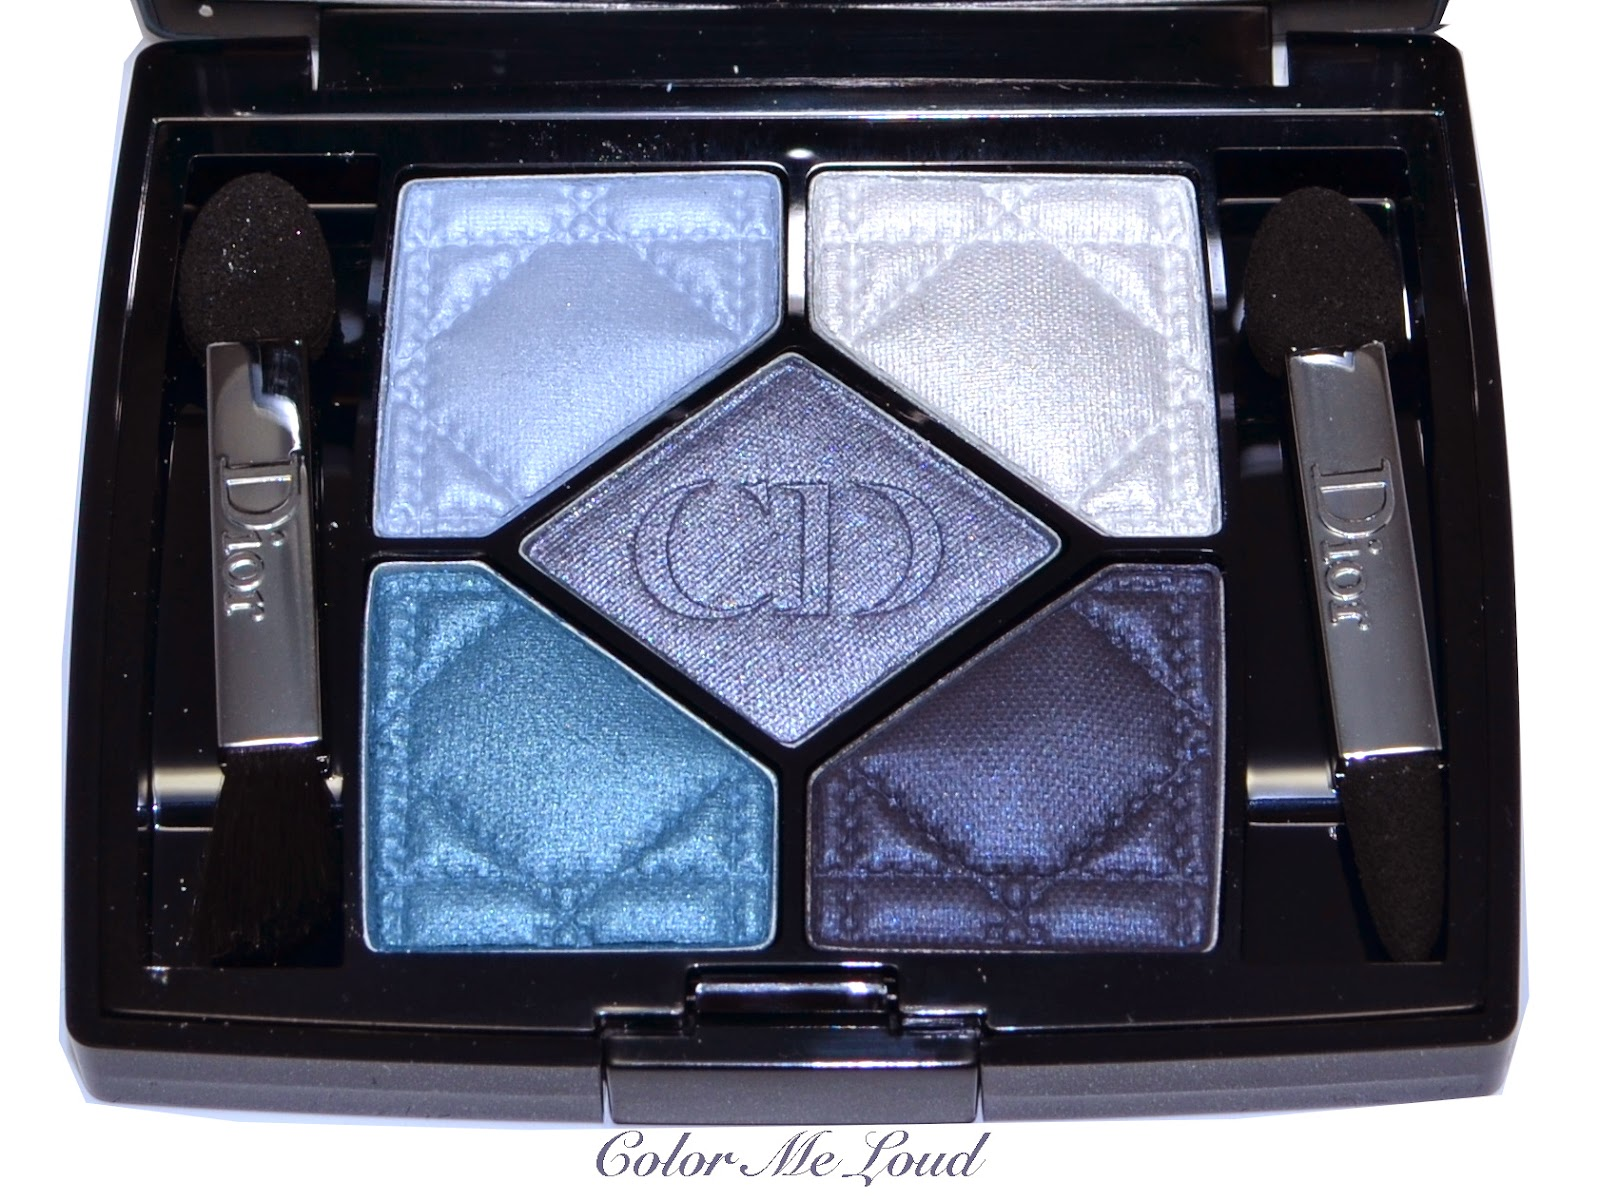 Dior 5 couleurs eyeshadow palette 276 carr bleu from for Carre bleu